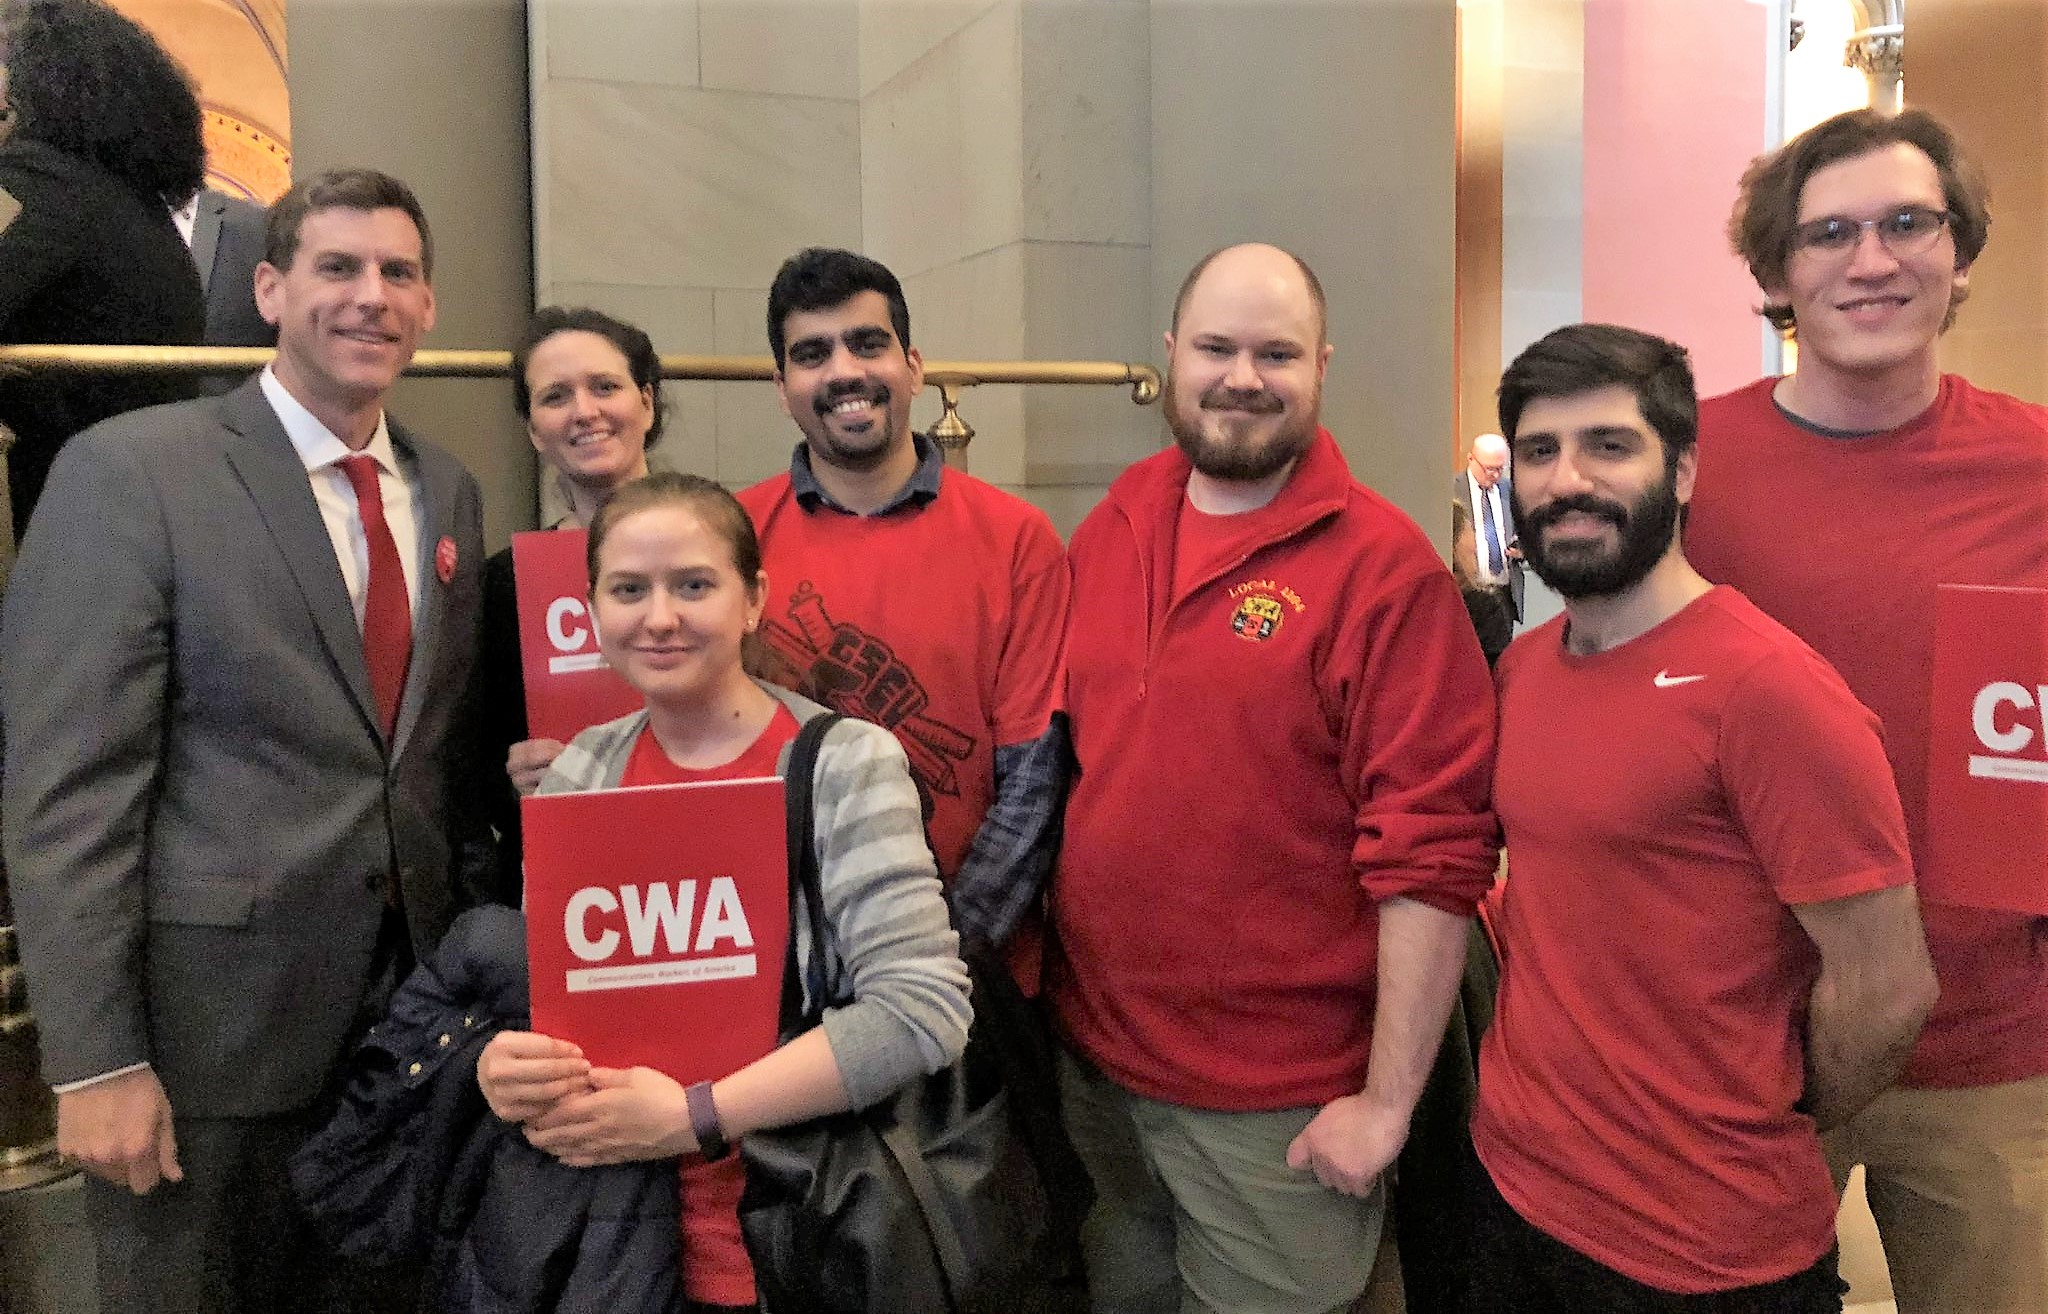 On February 12, 2020, Assemblyman Braunstein met in Albany with members of CWA 1104, SUNY Graduate Student Employees Union.